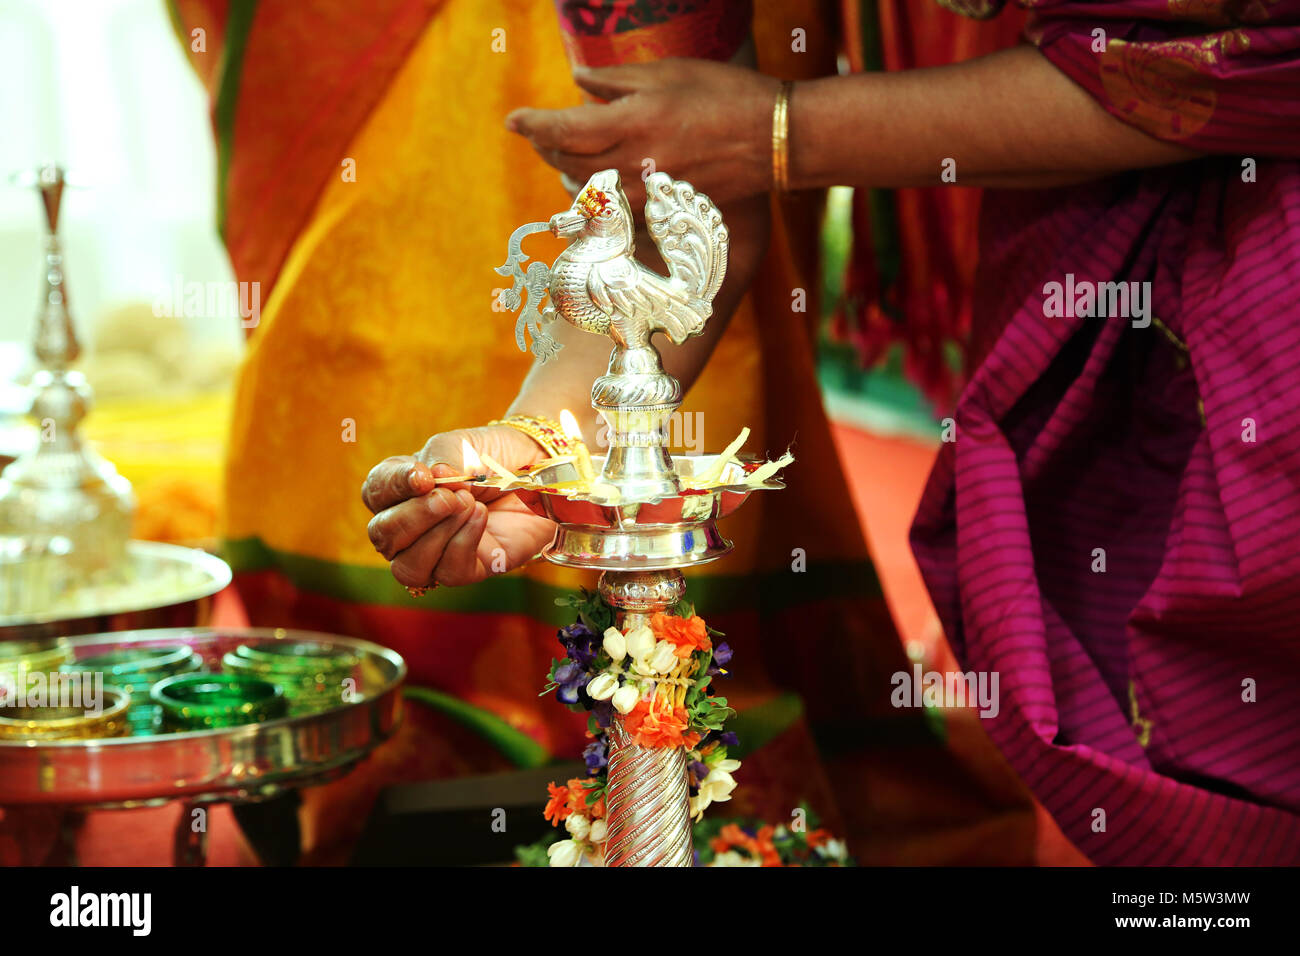 Hindu wedding rituals Traditional south Indian brass oil lamp - Stock Image